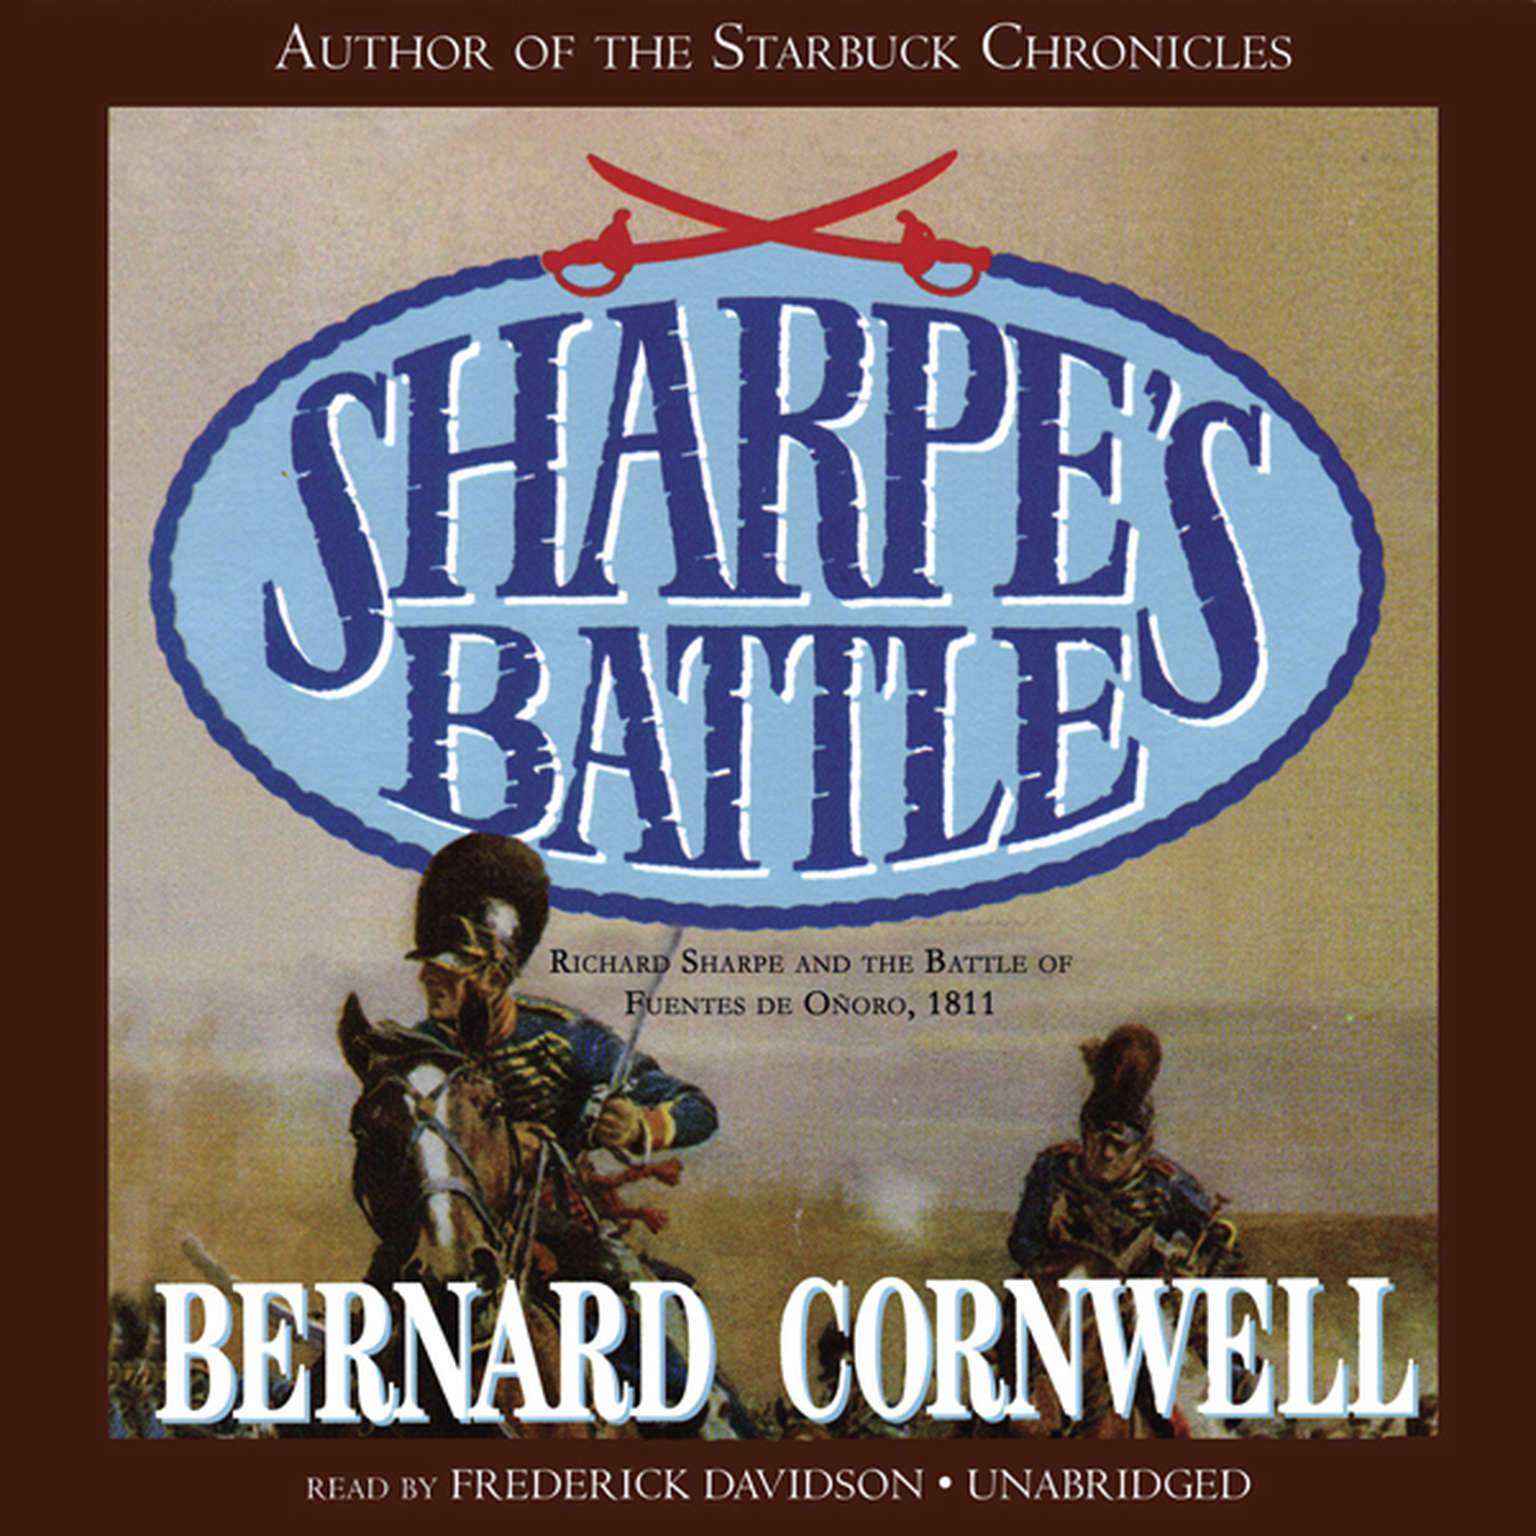 Printable Sharpe's Battle: Richard Sharpe and the Battle of Fuentes de Oñoro, May 1811 Audiobook Cover Art